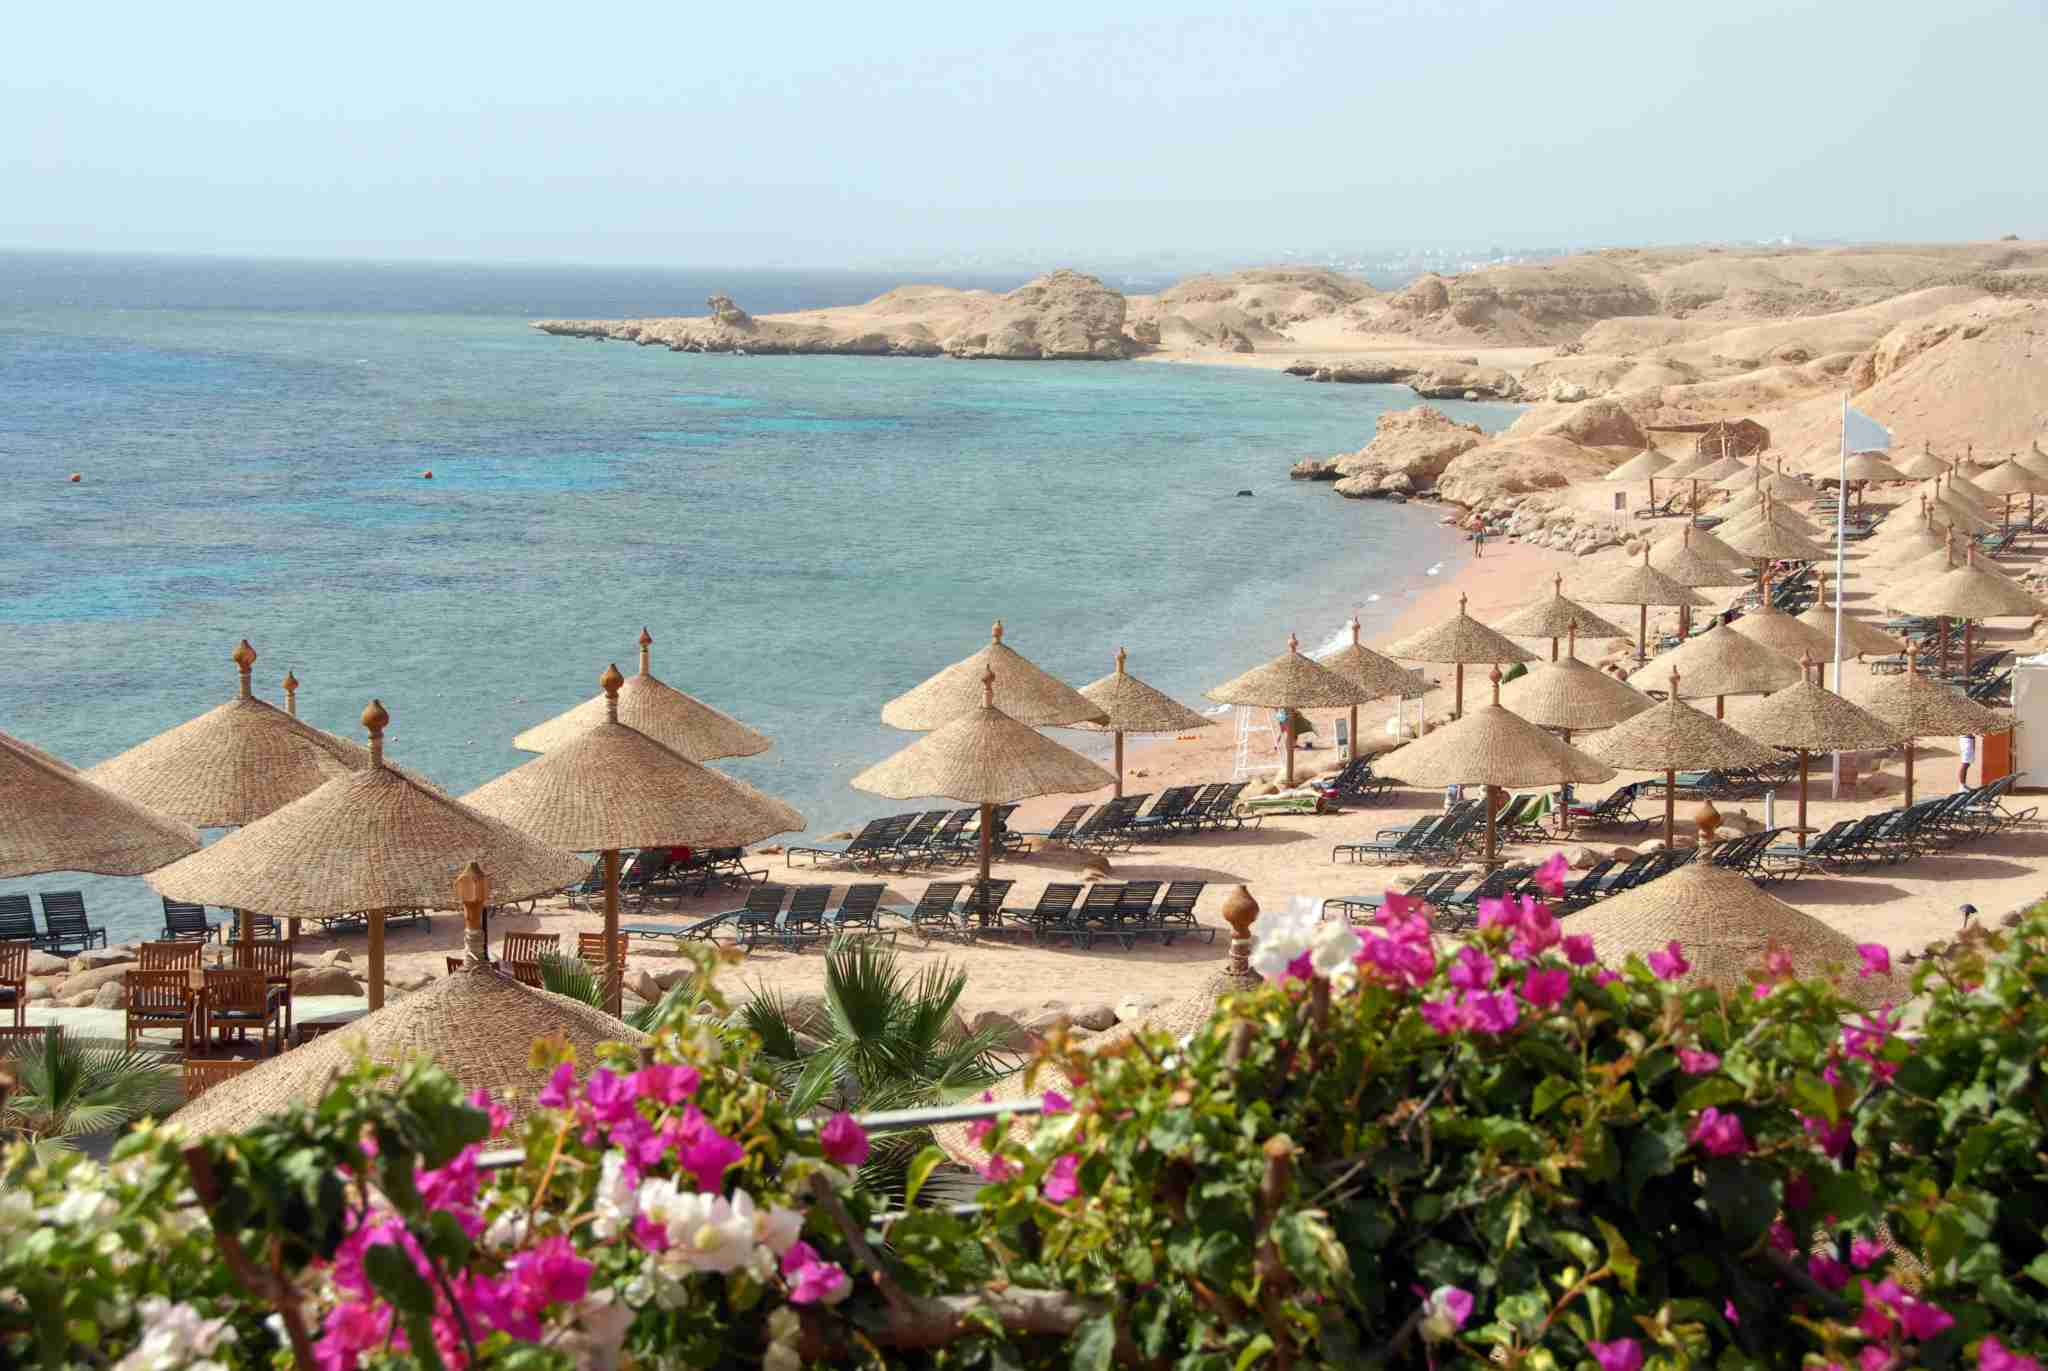 Beach with parasols and blooming bougainvillea near Sharm el-Sheikh,Red Sea,Egypt.